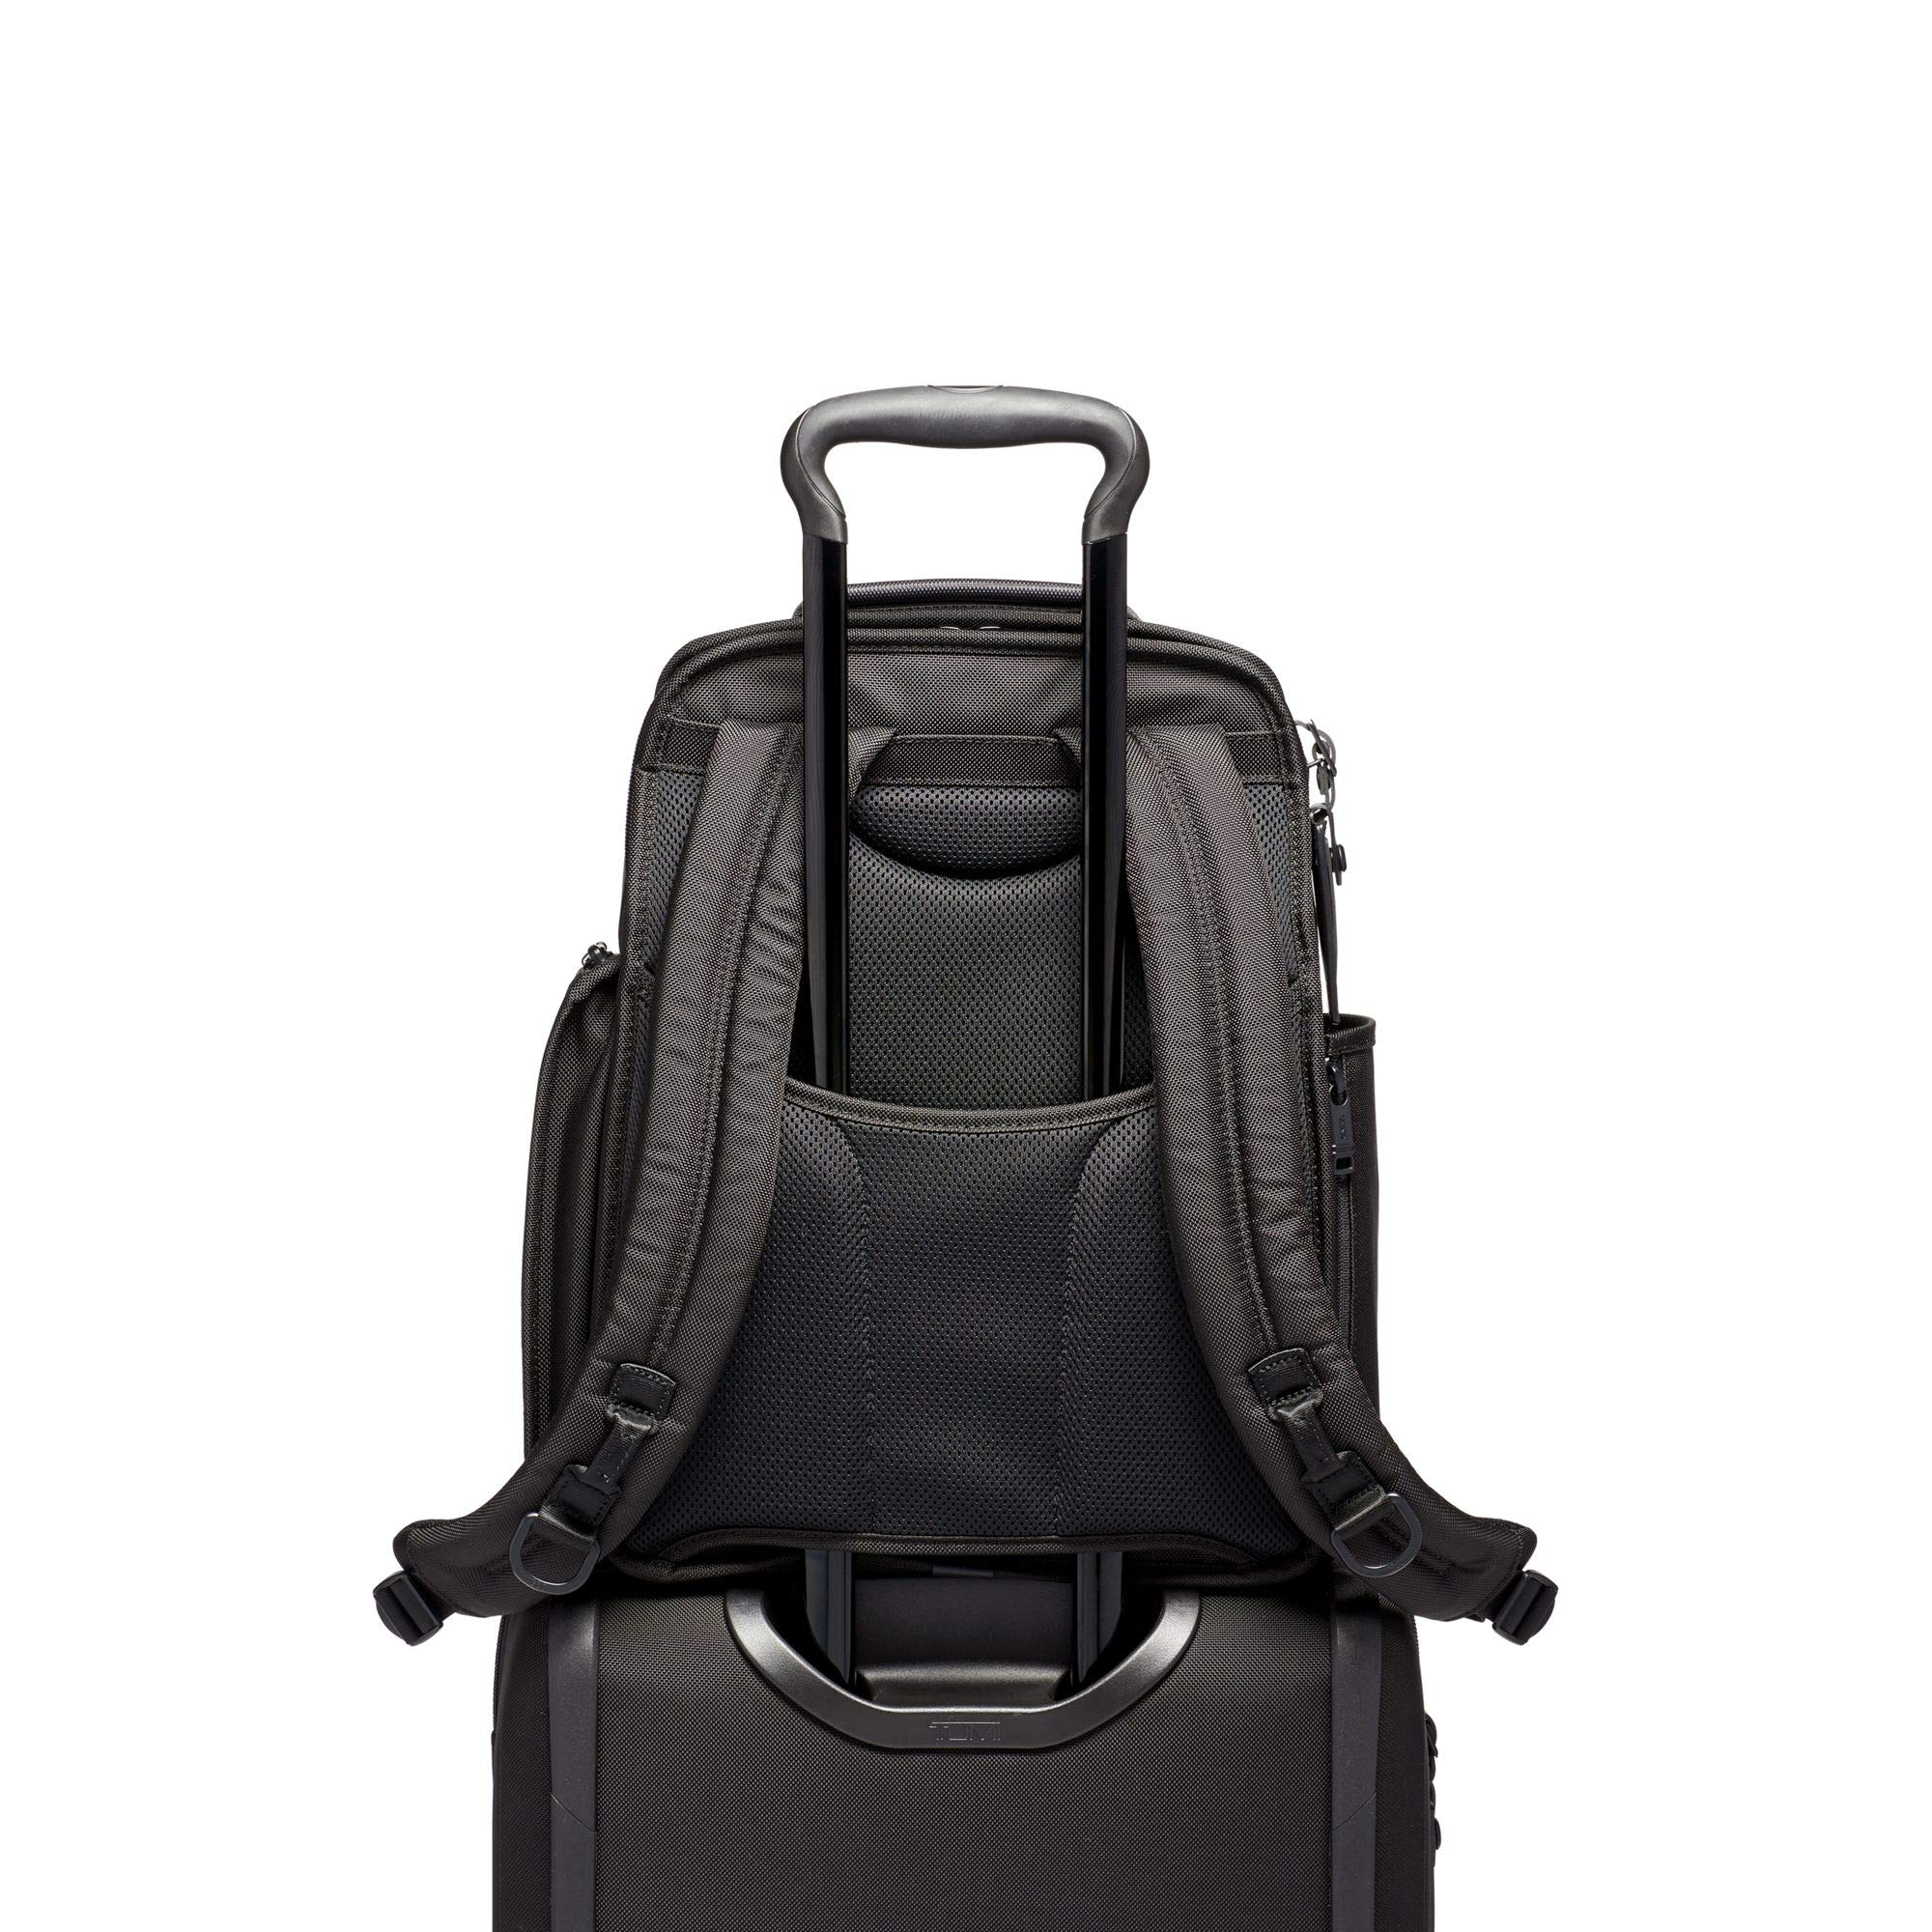 TUMI - Alpha 3 Compact Laptop Brief Pack - 15 Inch Computer Backpack for Men and Women - Black by TUMI (Image #5)